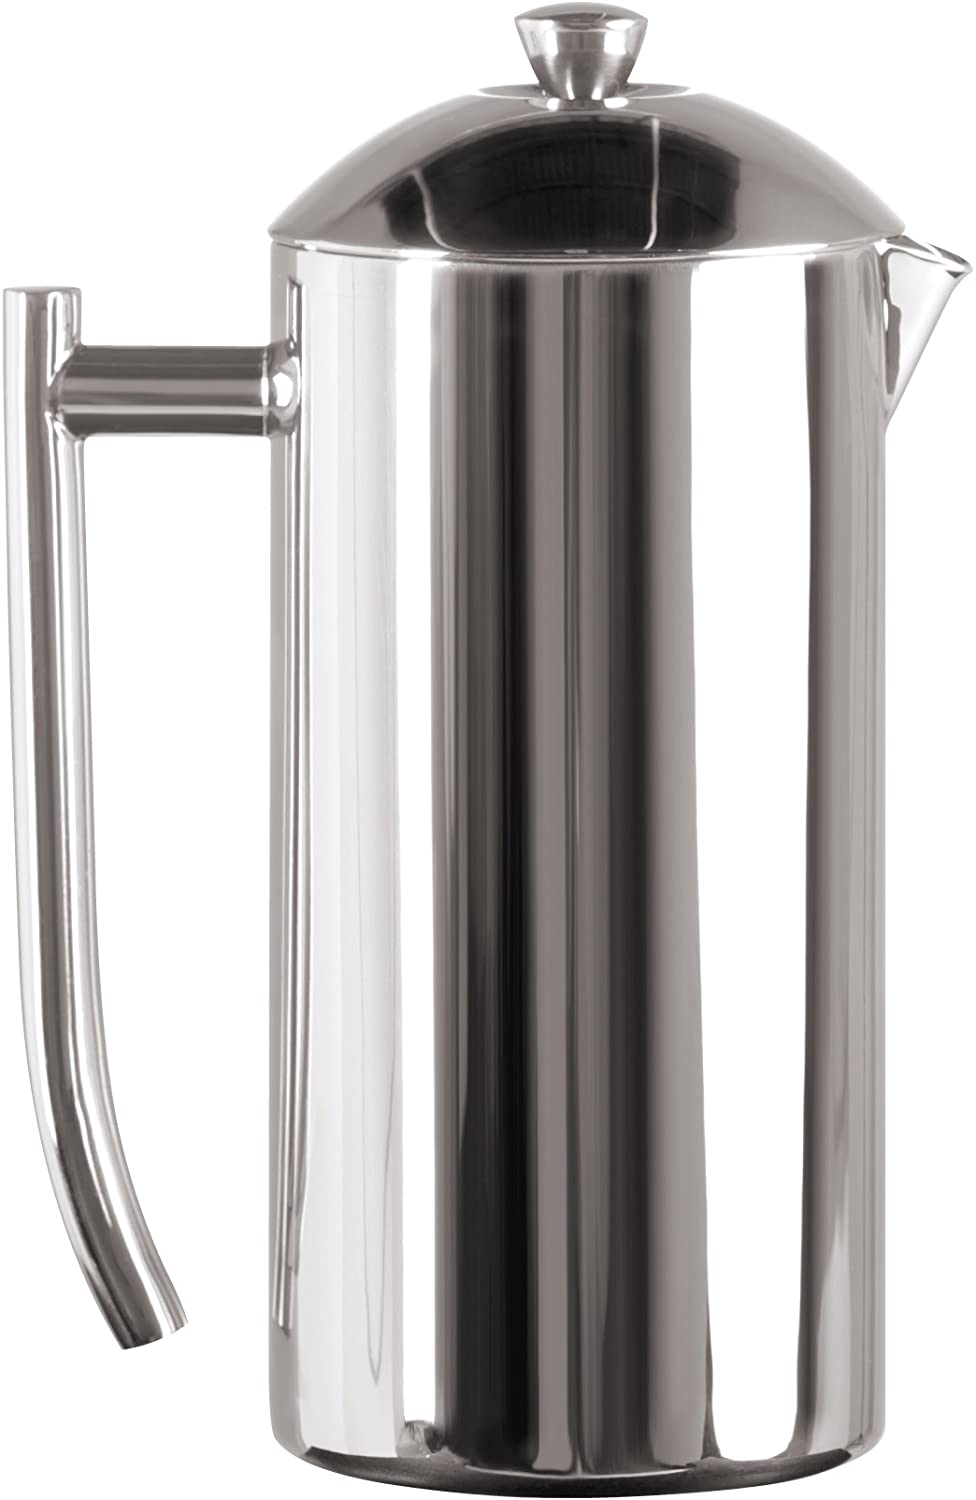 Frieling French Press Plastic-Free Coffee Maker